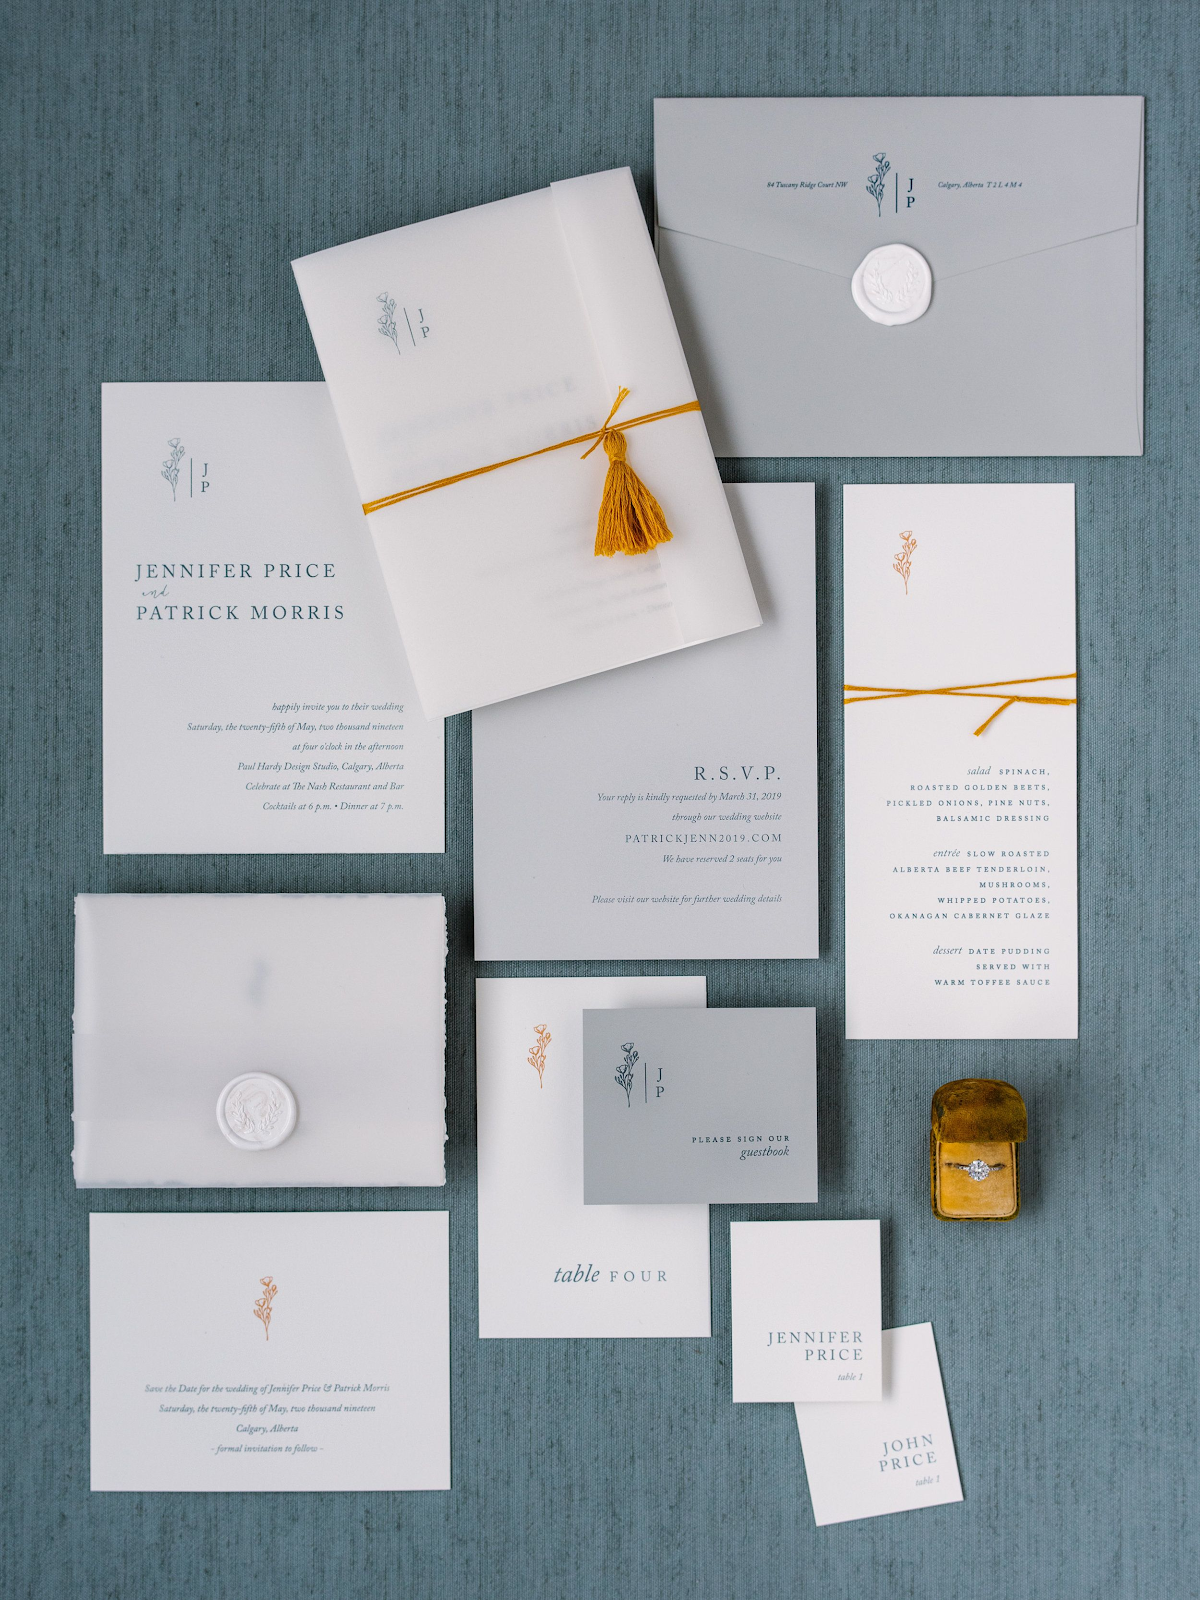 find your wedding style and wedding colors